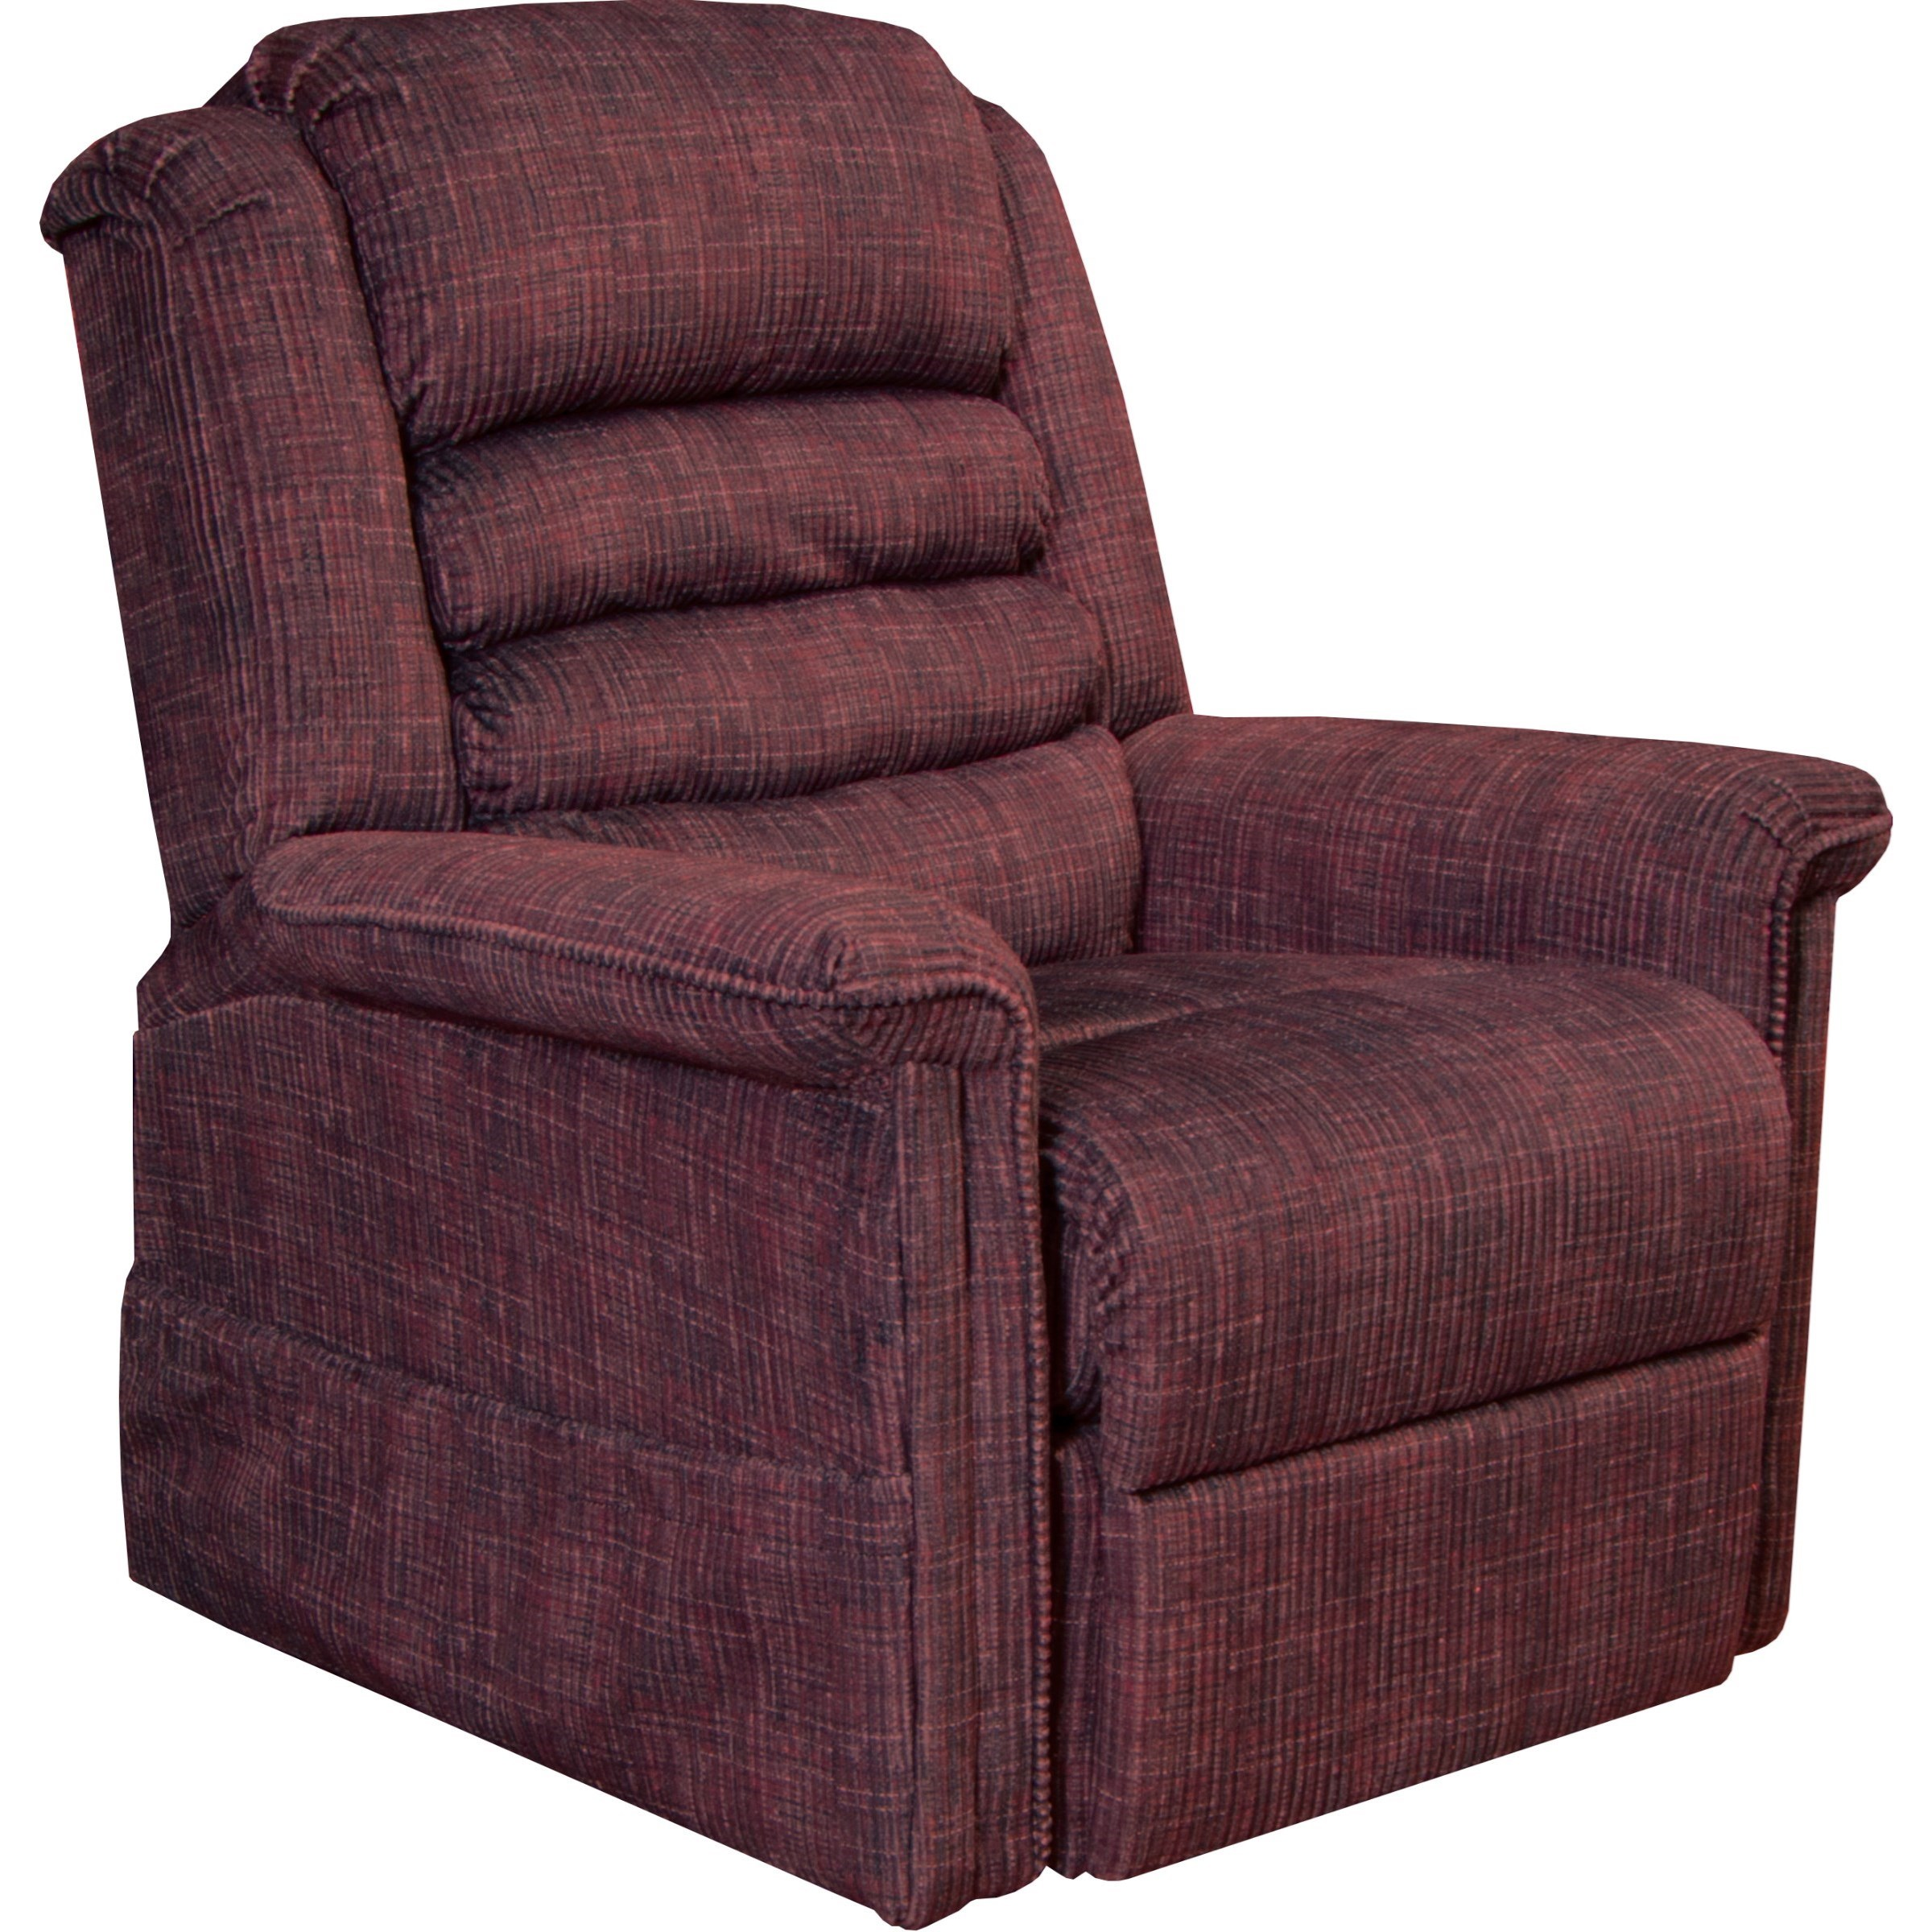 4825 Power Lift Recliner by Catnapper at Wilson's Furniture